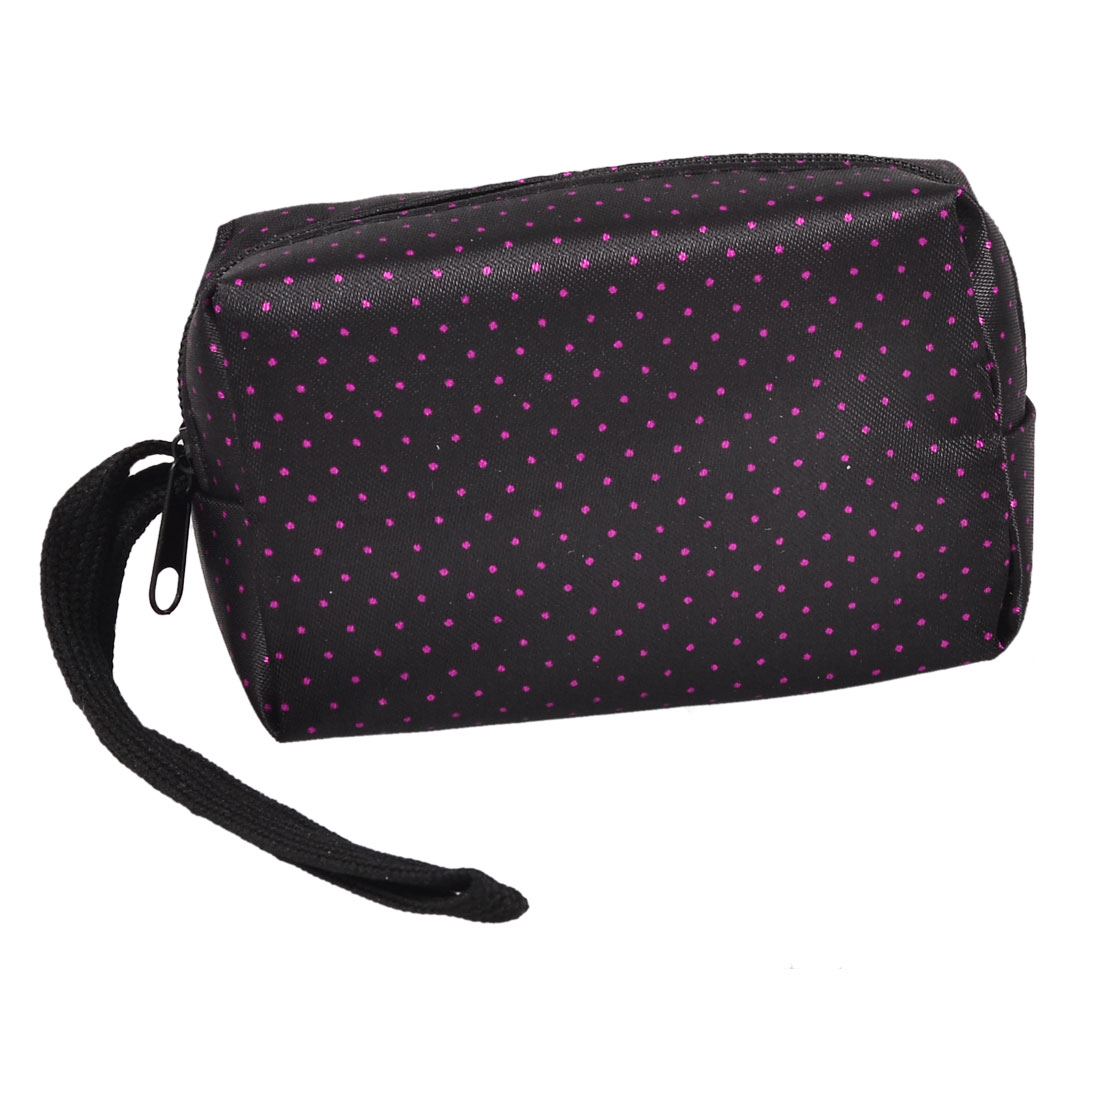 Fuchsia Dotted Print Rectangle Shape Zip Up Purse Bag Black w Strap for Lady